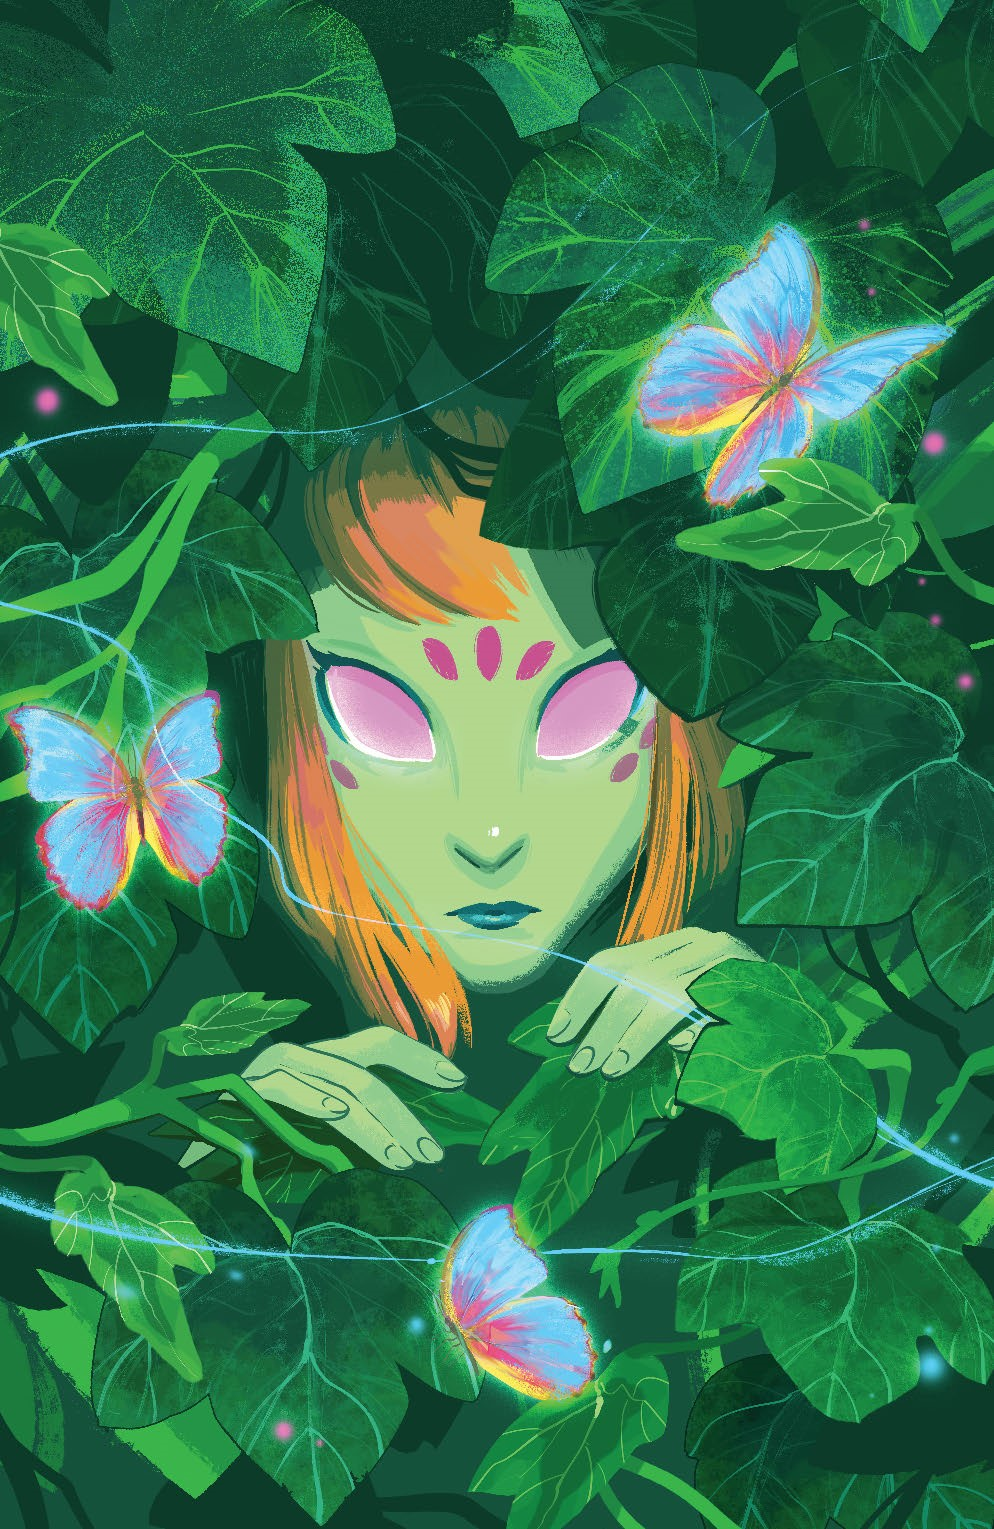 Wynd_009_Cover_C_Variant_LOW ComicList: BOOM! Studios New Releases for 08/04/2021